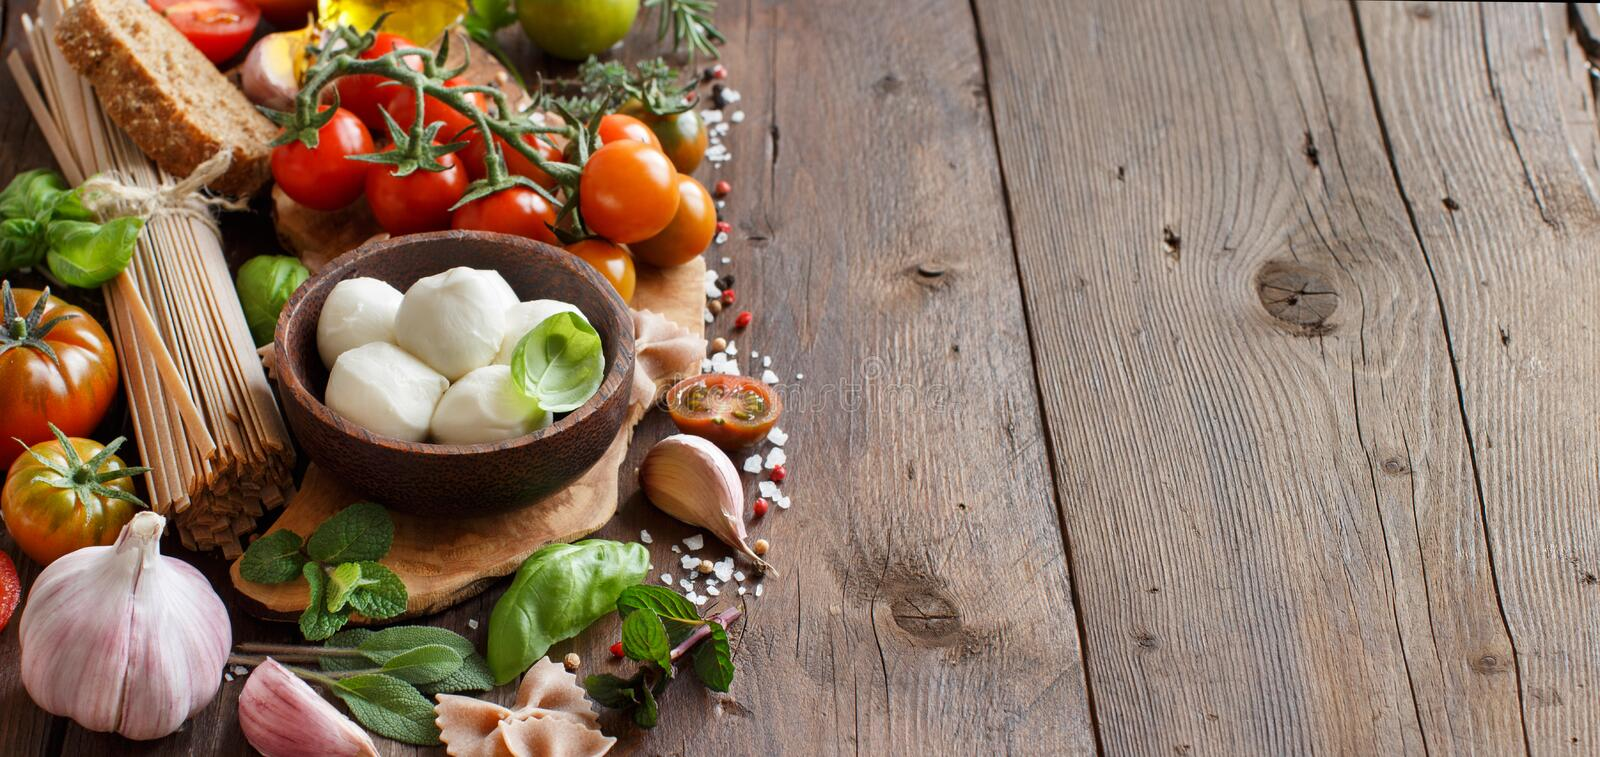 Download Italian Cooking Ingridients Stock Image - Image of meal, bright: 67419795